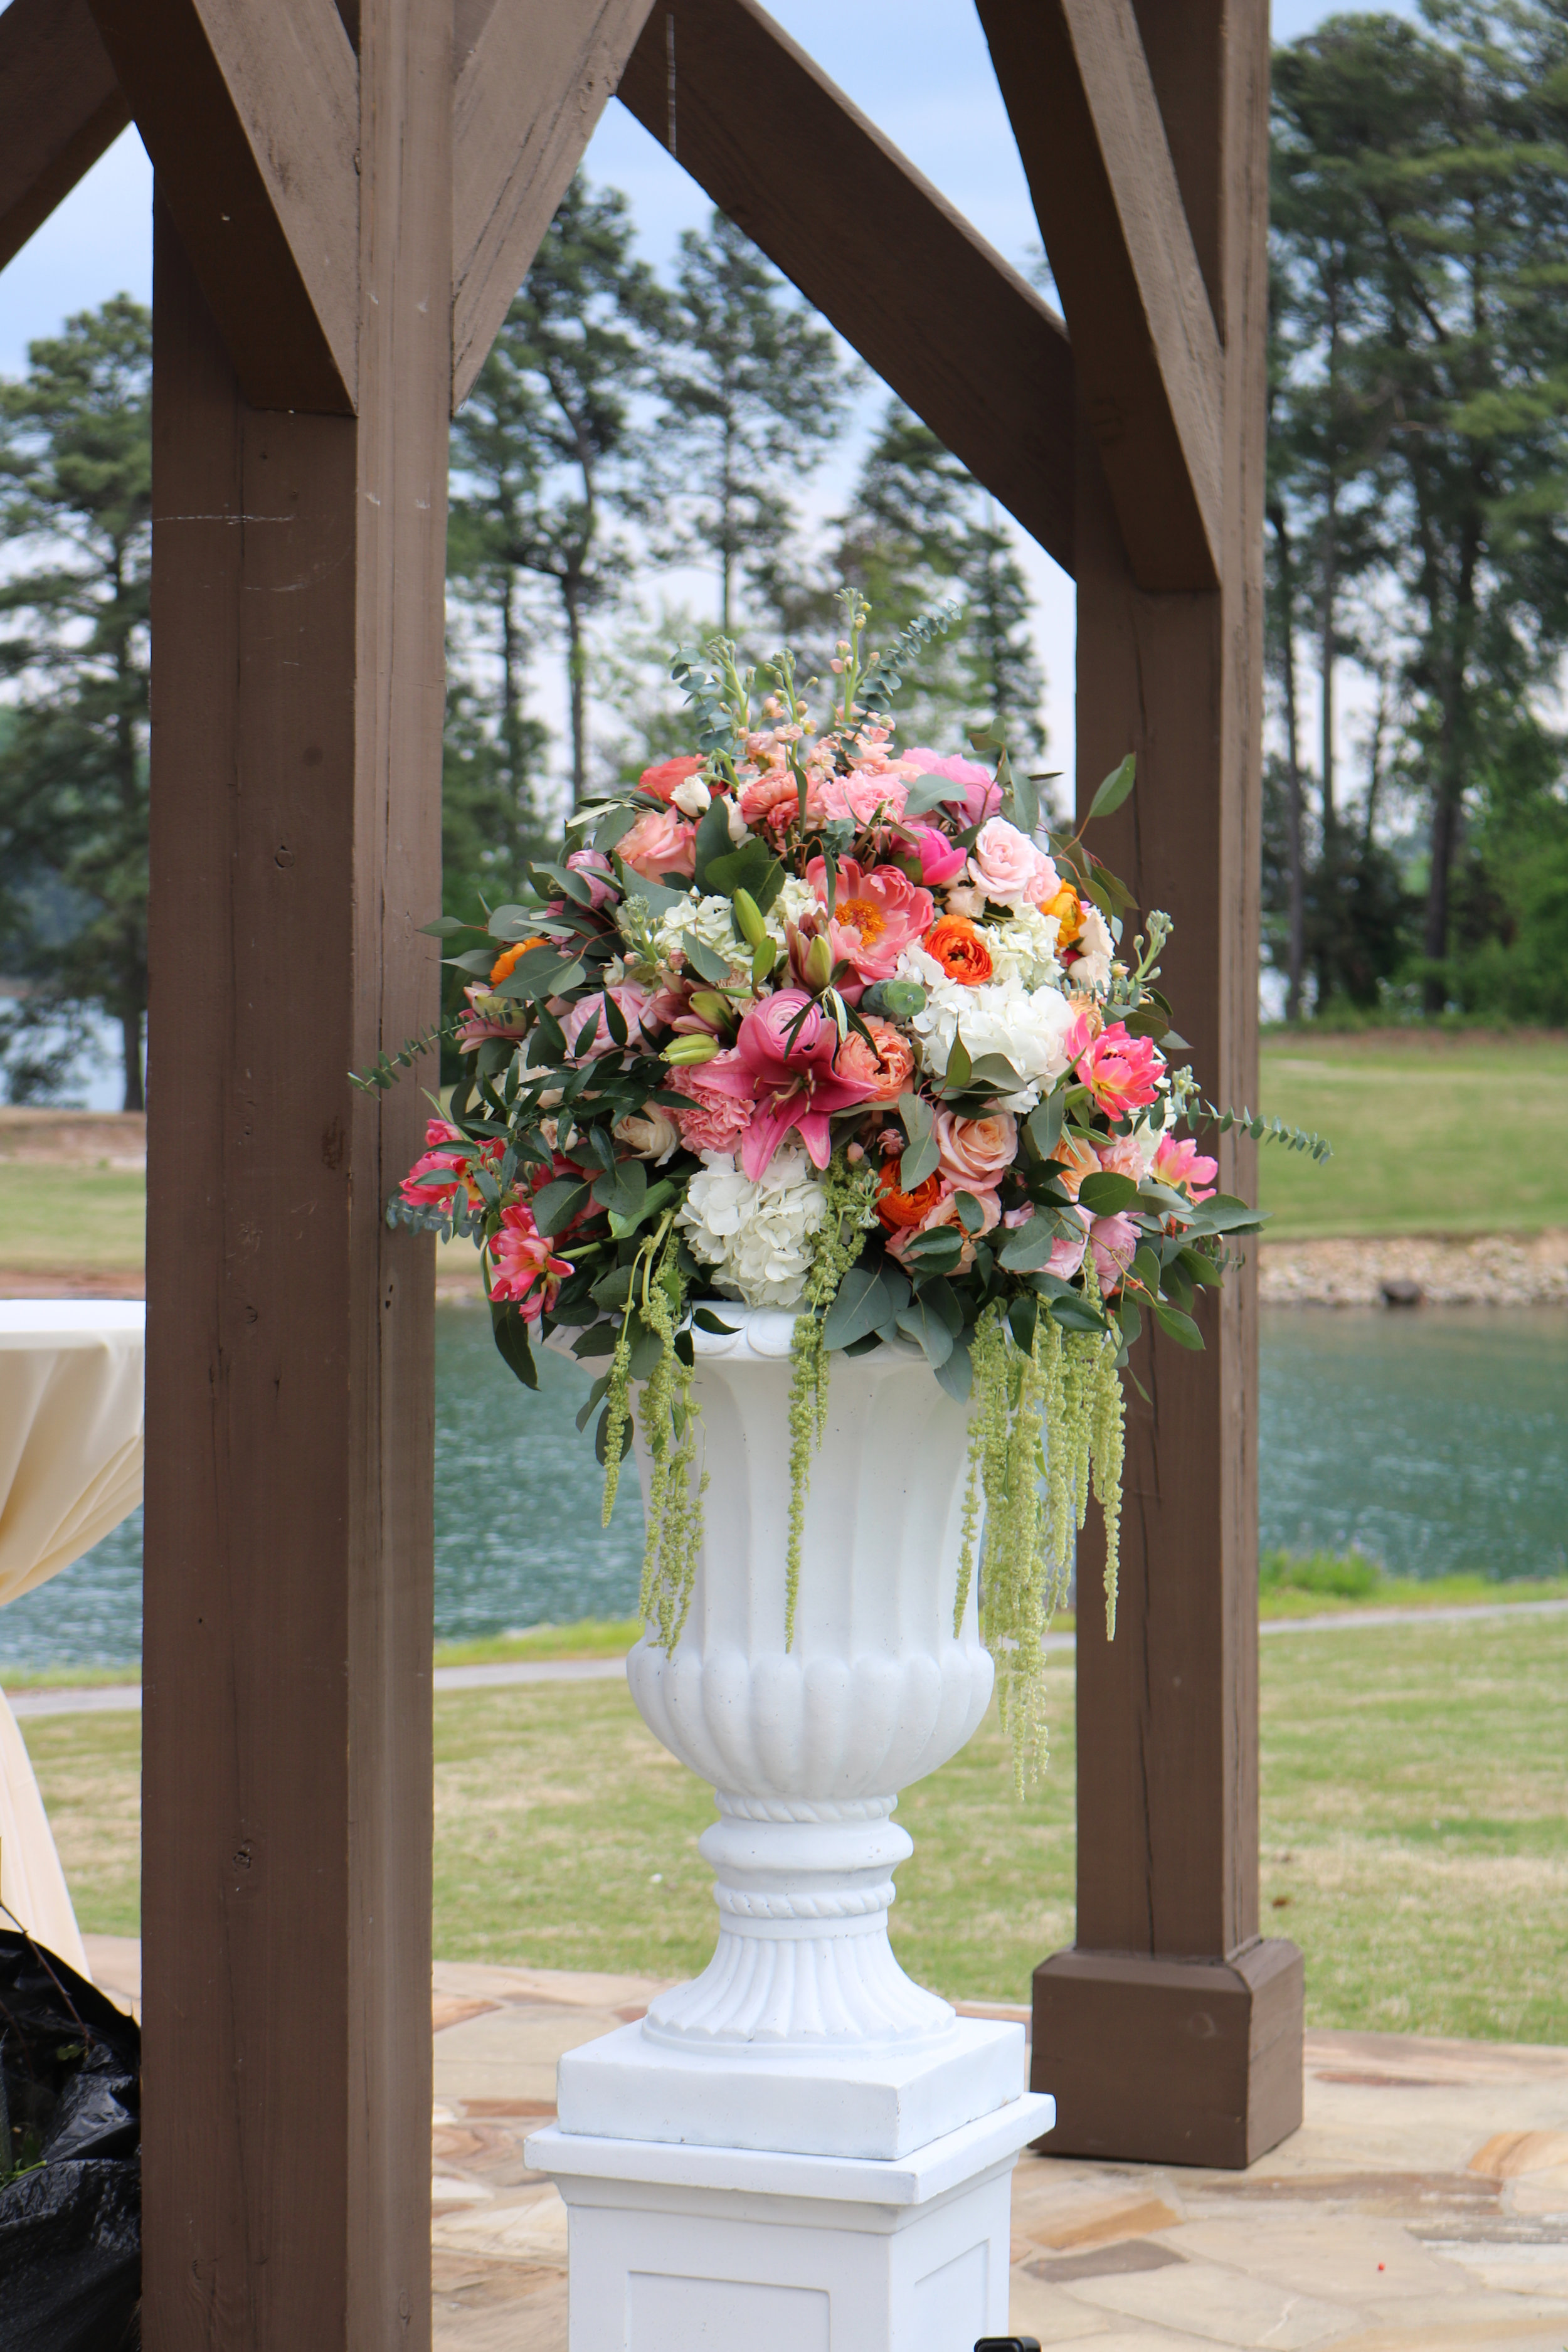 5 Ft. Tall Pair of White Aisle/Door Entry Urns